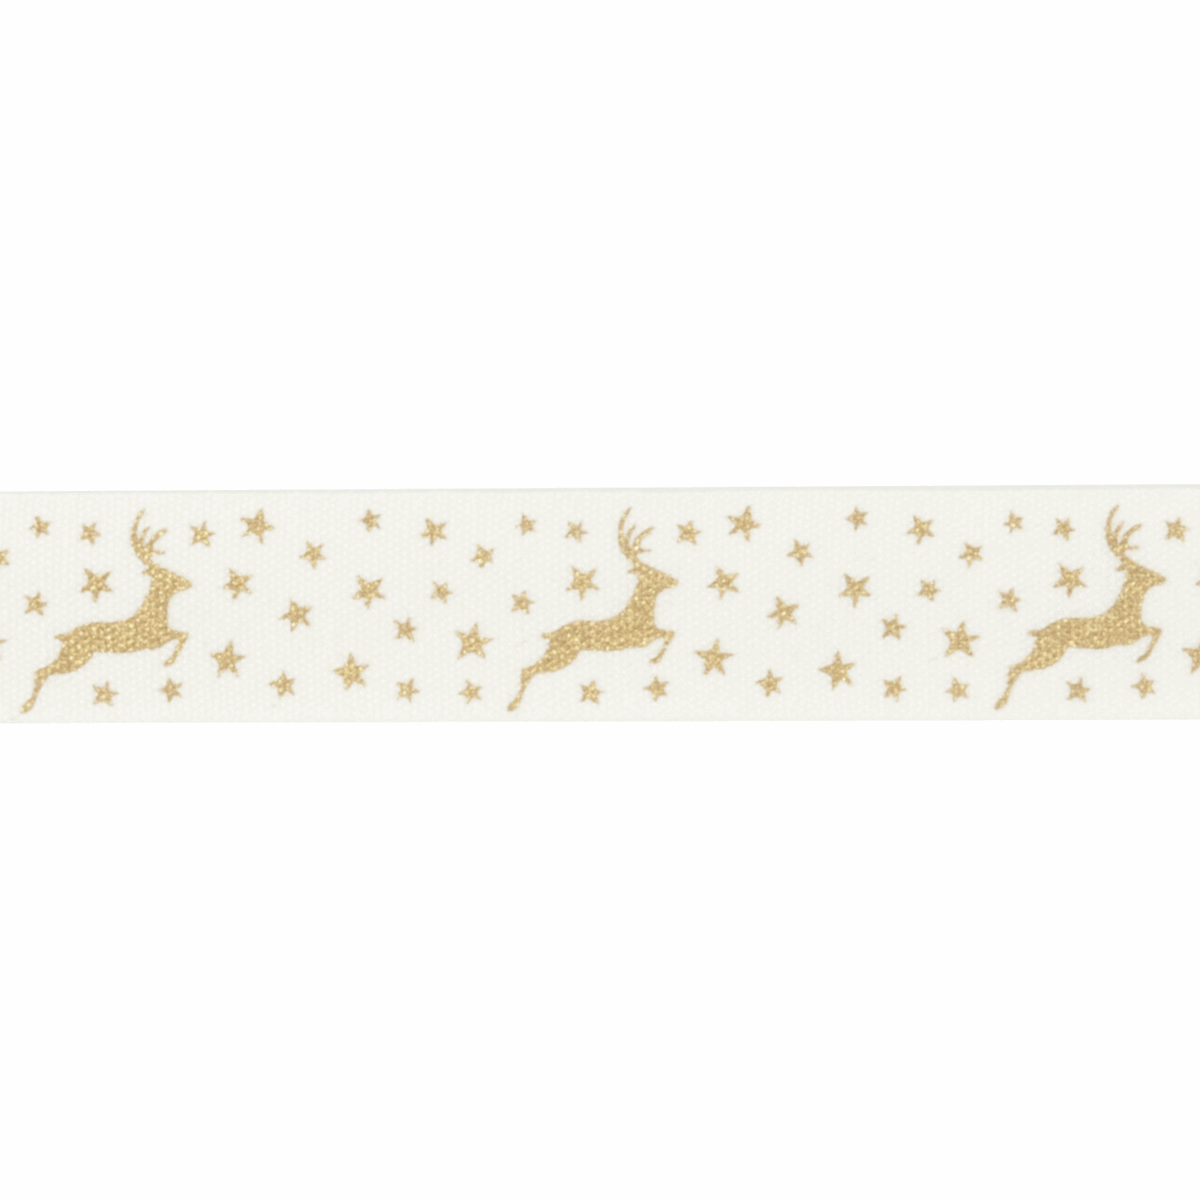 Picture of Bowtique Christmas: Metallic Reindeer: Gold: 25m x 15mm